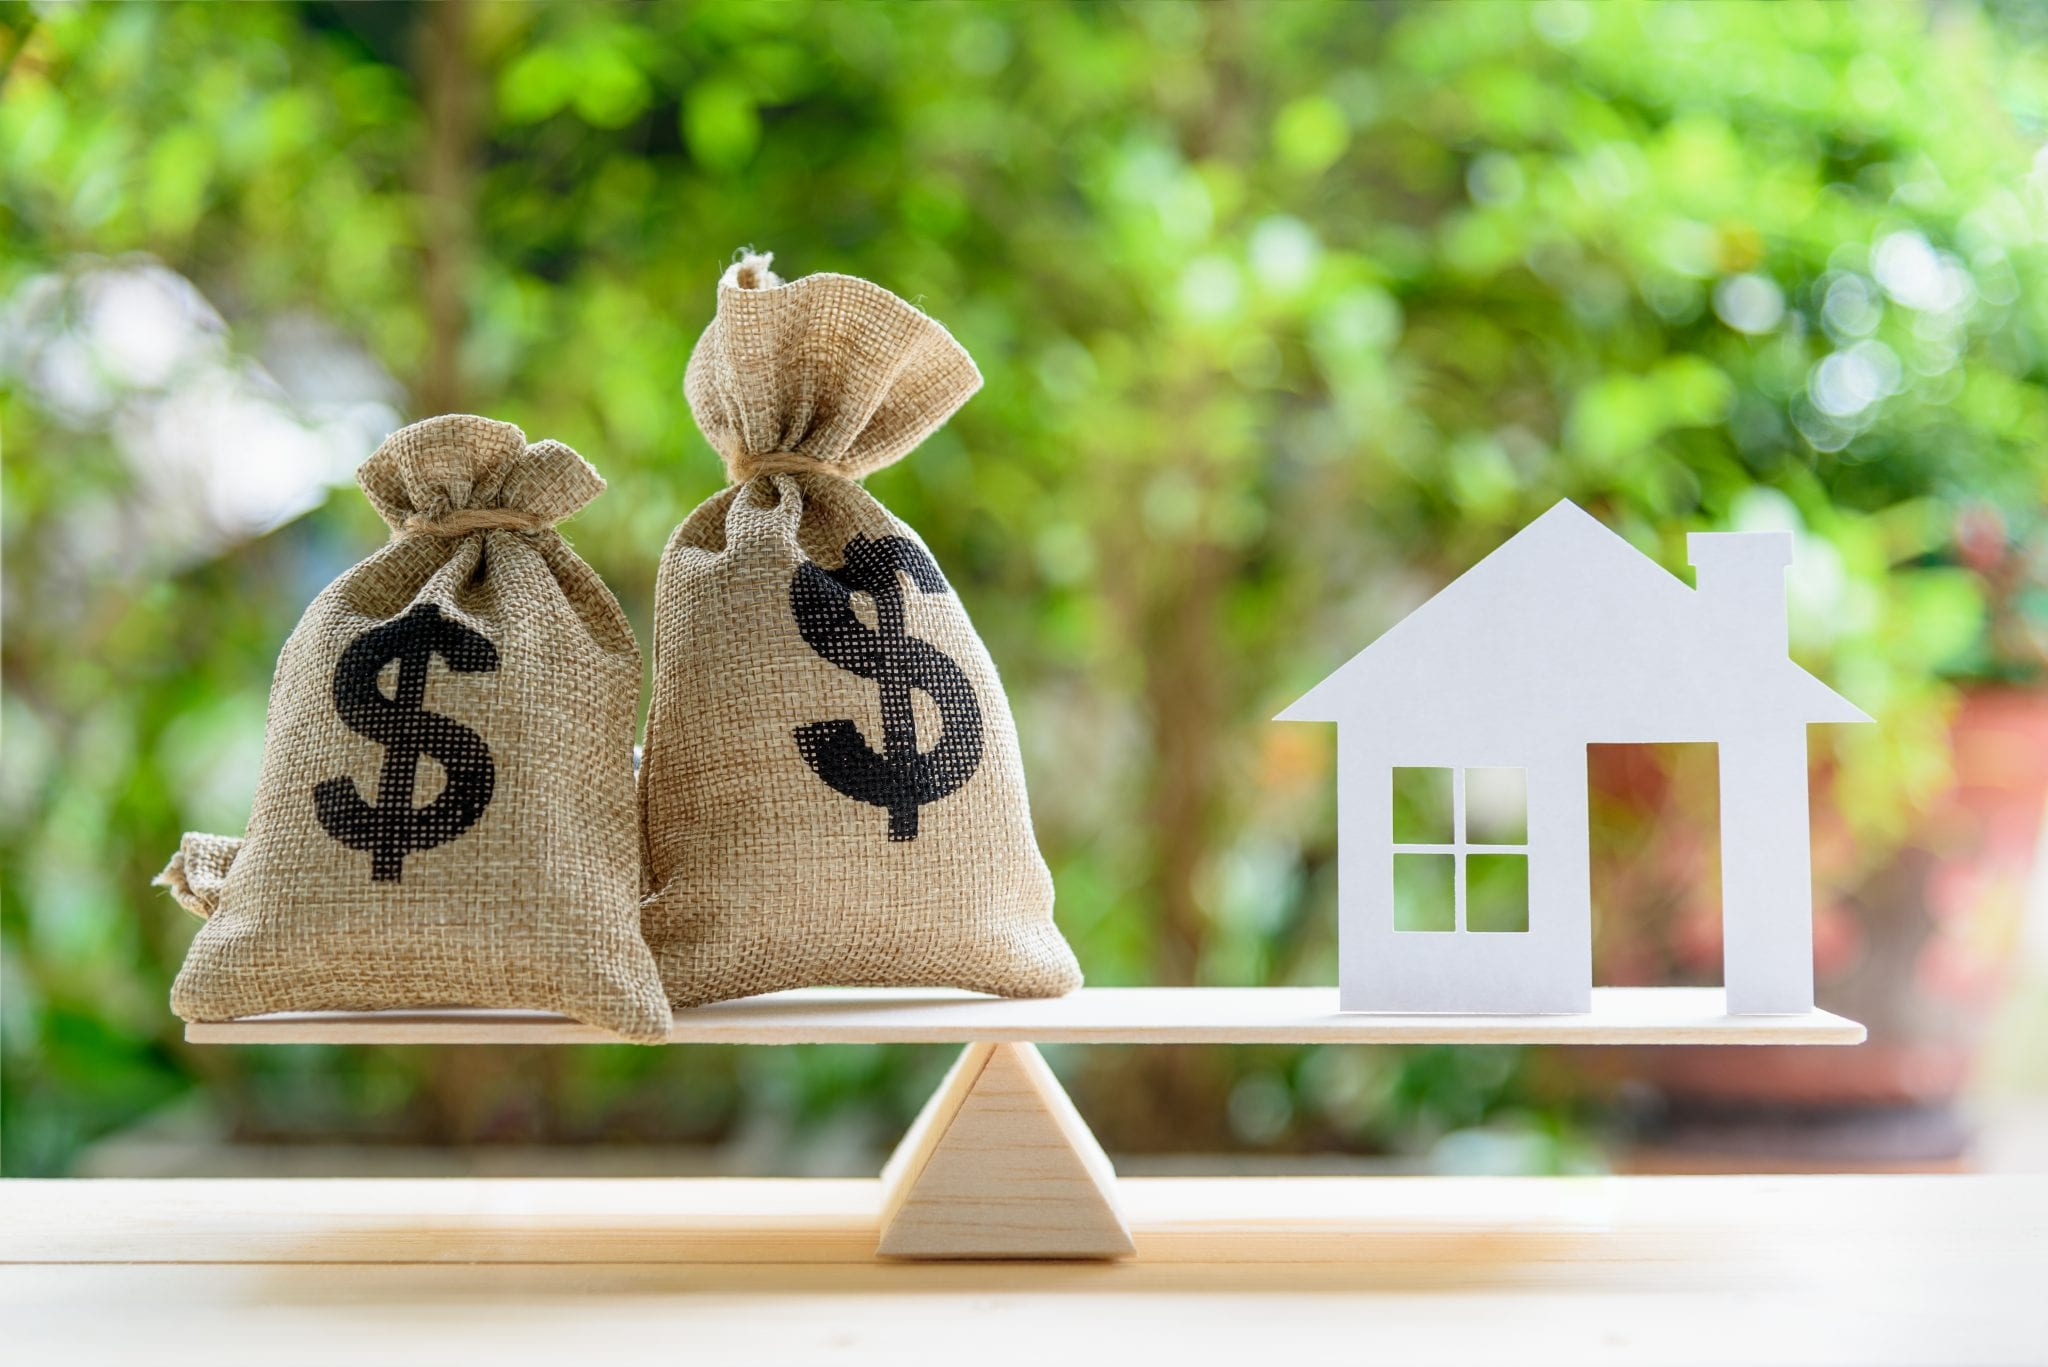 Money balanced on a scale with a house to represent home equity. Here's how to calculate equity.